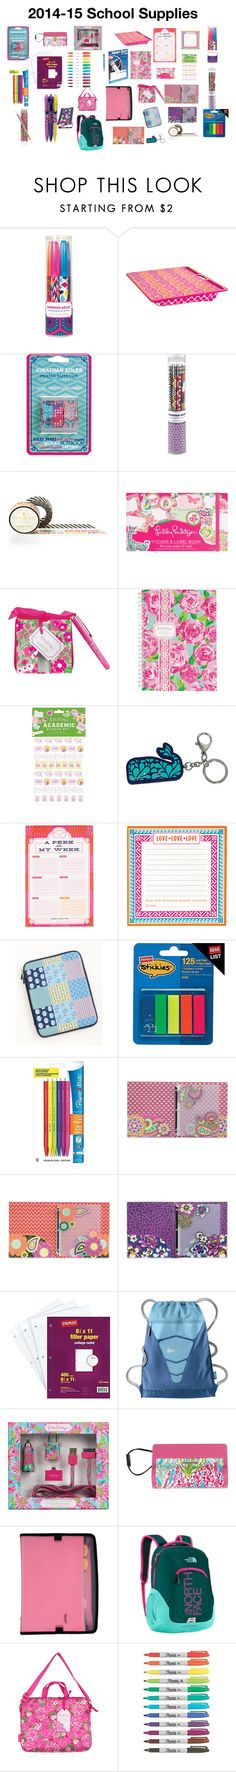 """""""2014-15 School Supplies"""" by victoria-n-w ❤ liked on Polyvore featuring Jonathan Adler, Kate Spade, Lilly Pulitzer, Paper Mate, Vera Bradley, NIKE, Mead, Sharpie and Avery"""